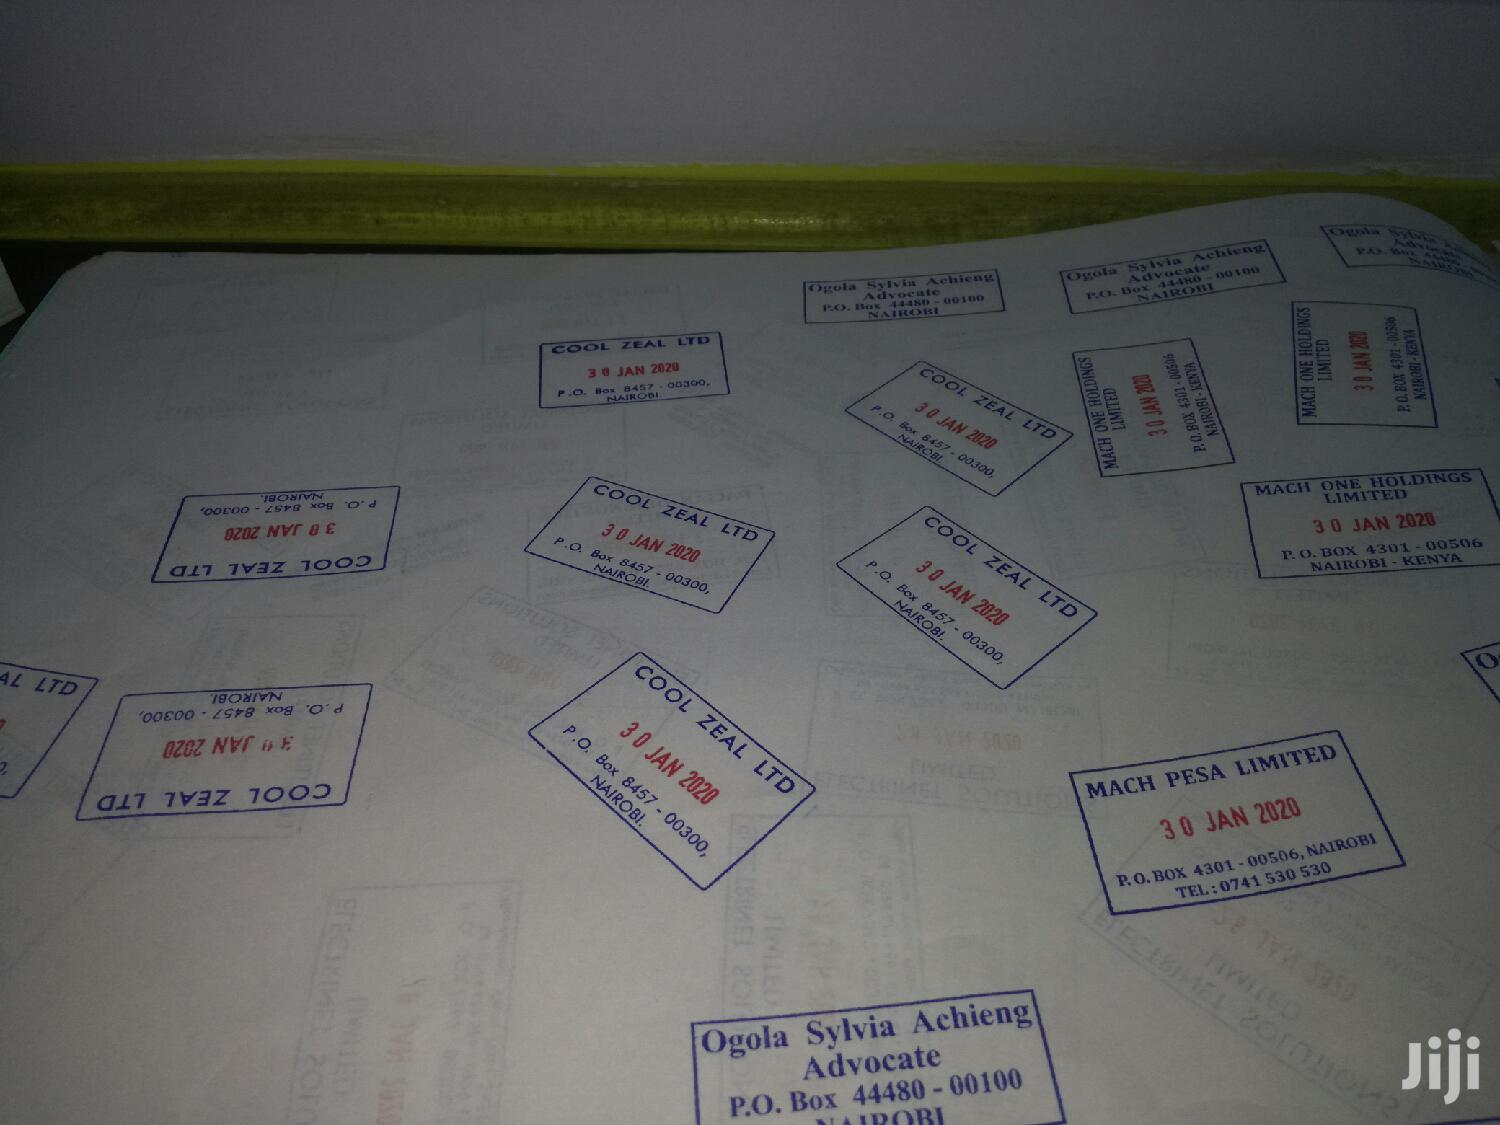 Rubber Stamps And Company Seals